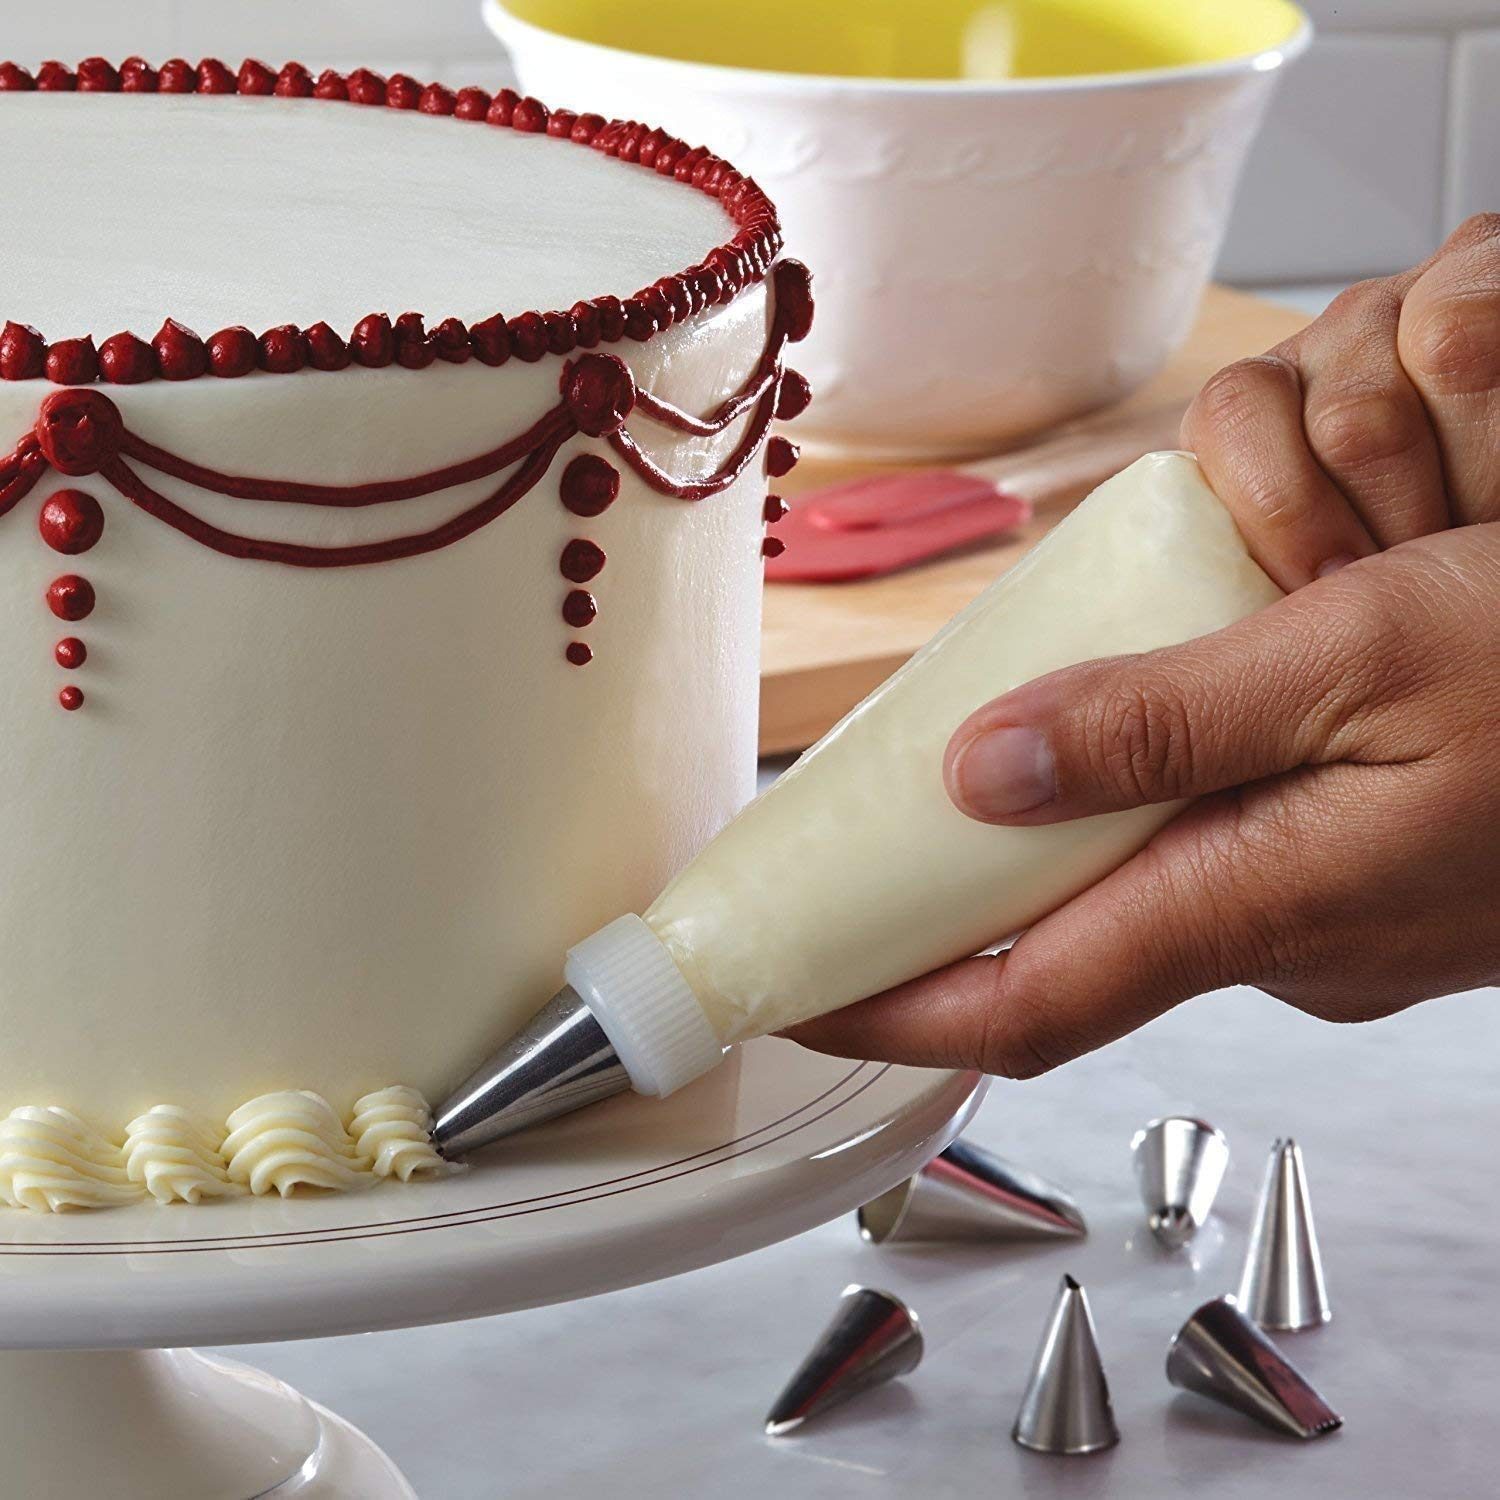 Cake Combo Of Cake Making Turn Table 7 Inch Stainless Steel Spatula, 12 Piece Of Cake Decoration Nozzles With Icing Bag And 3 Pieces Of Dough Scrapper